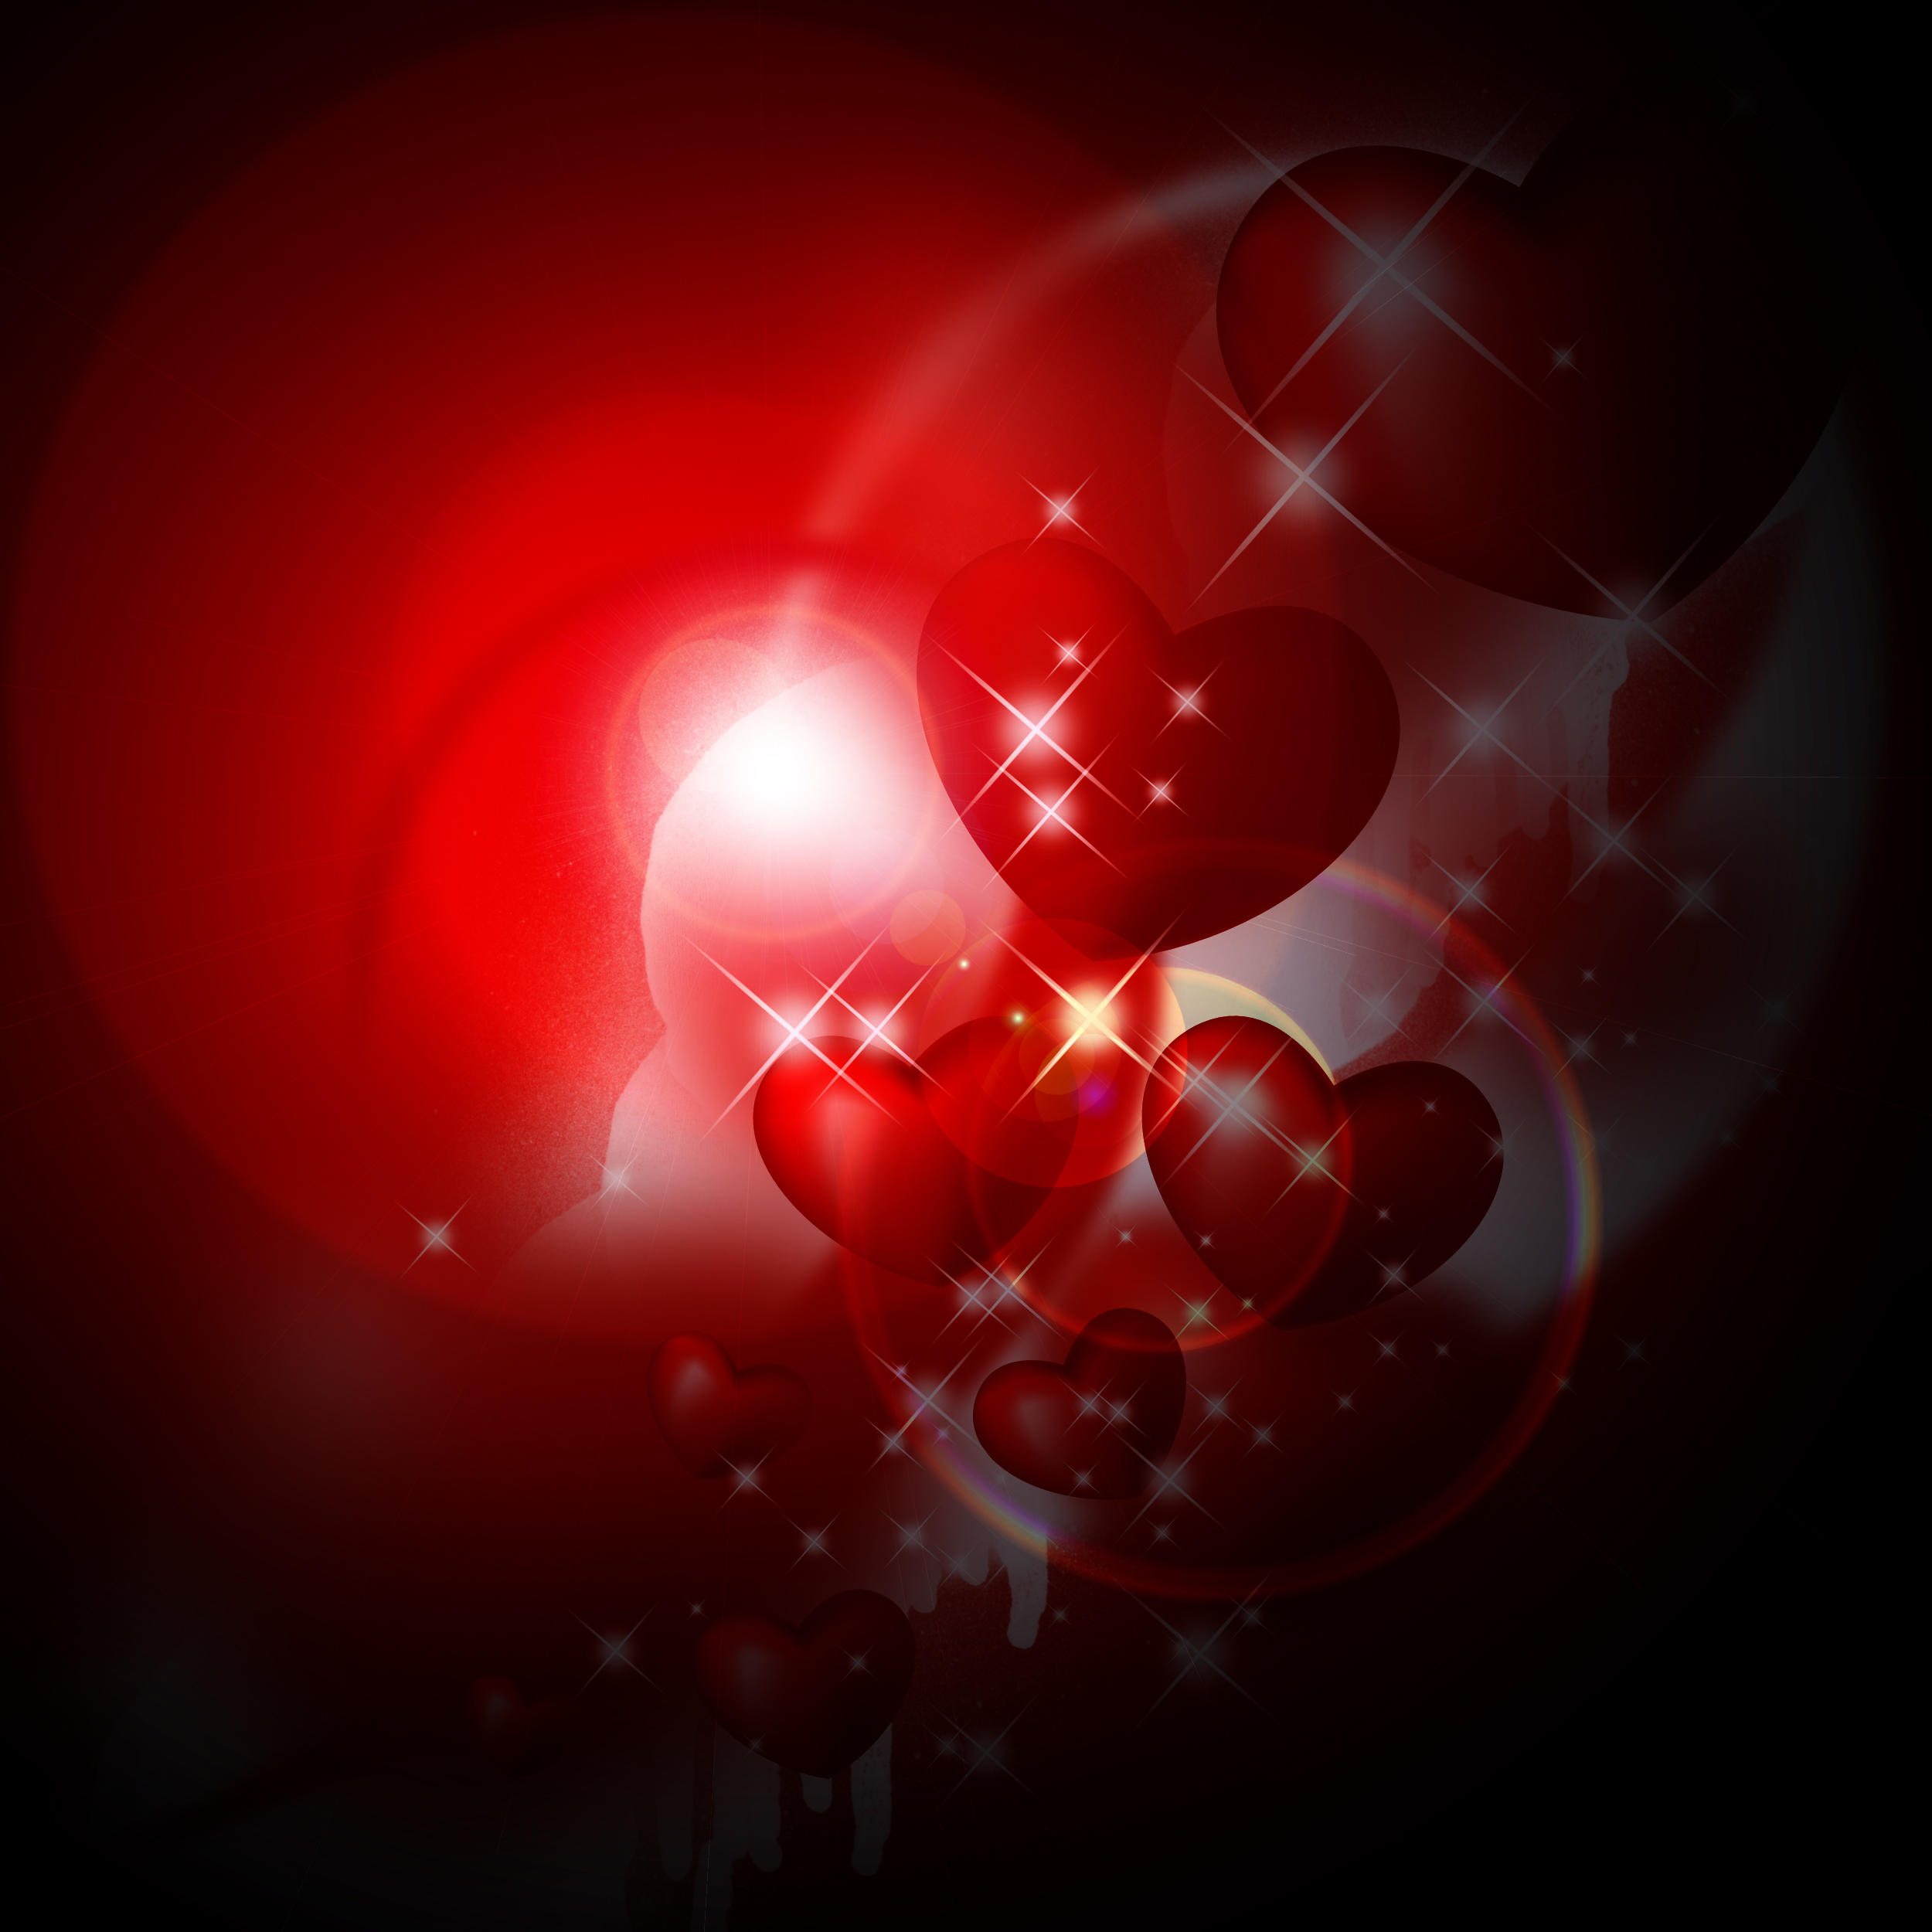 Photoshop FREE Background Download http://freephotoshop.org/2011/01/free-valentine-backgrounds/